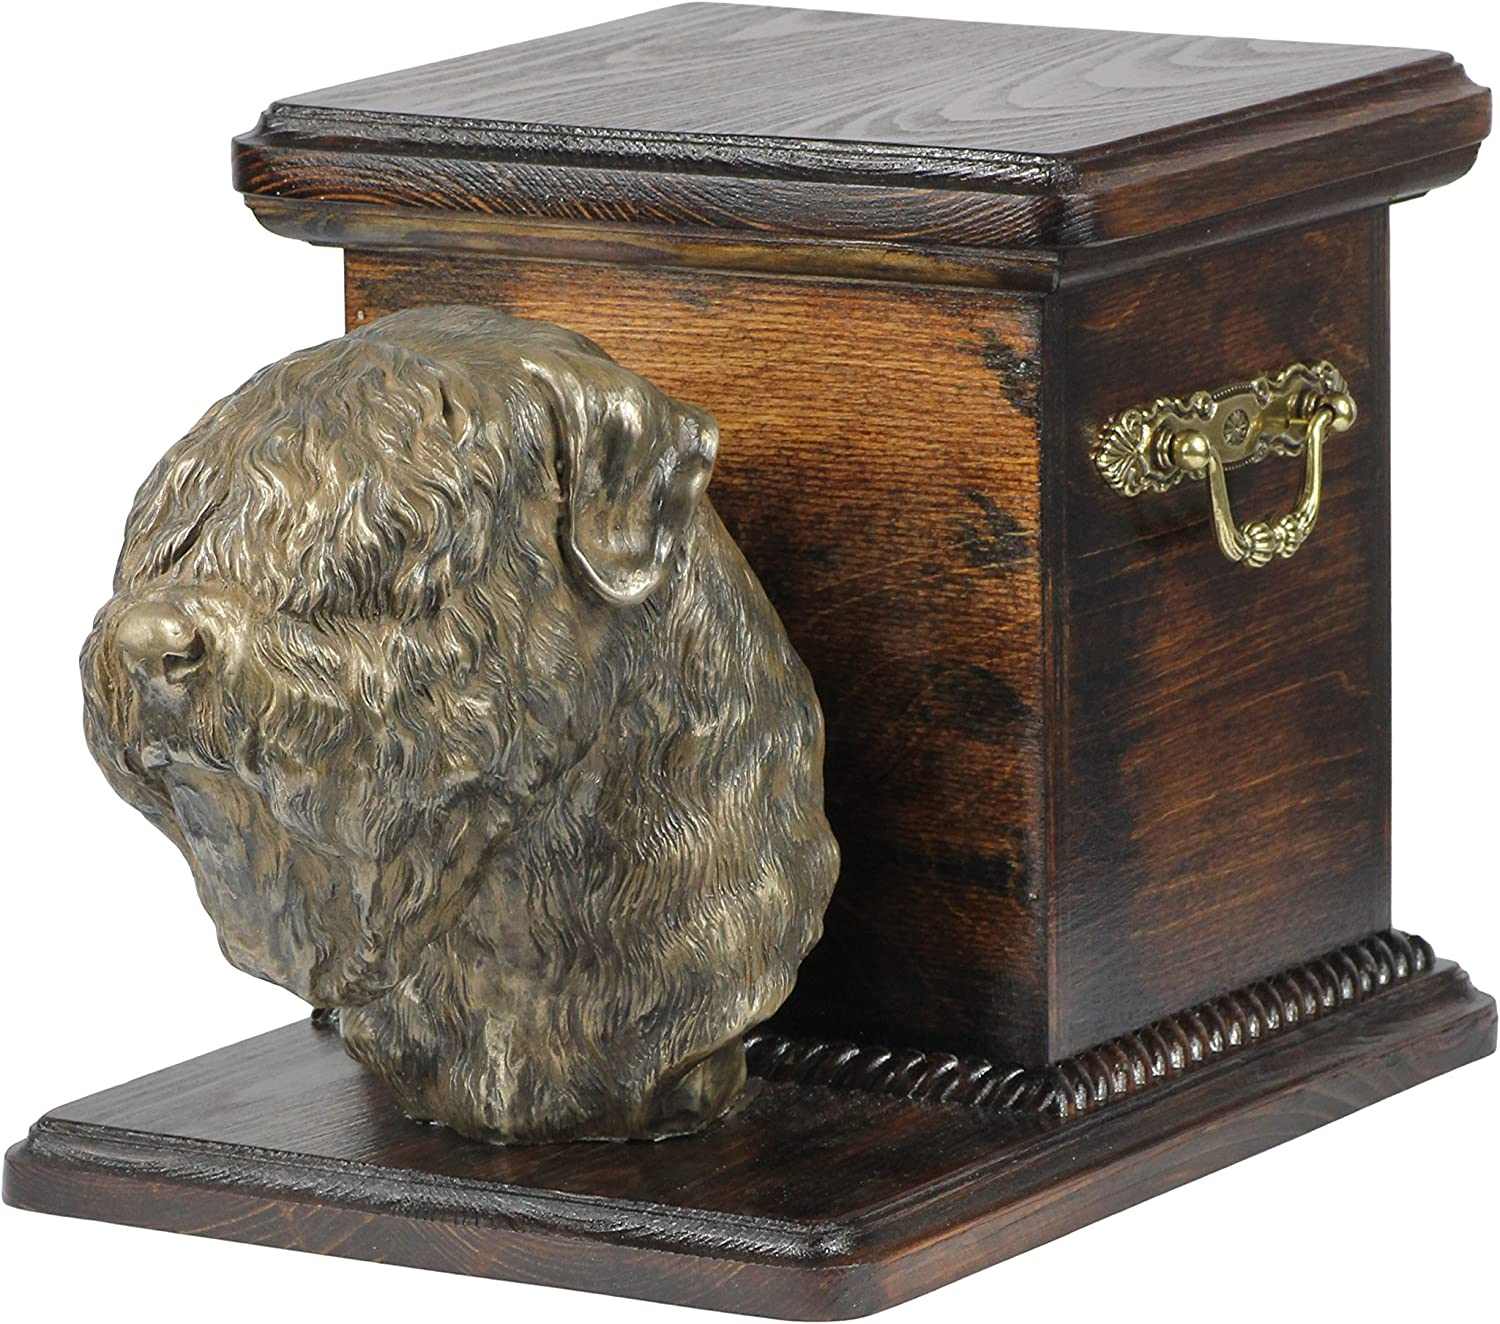 Black Russian Terrier, memorial, urn for dog's ashes, with dog statue, ArtDog